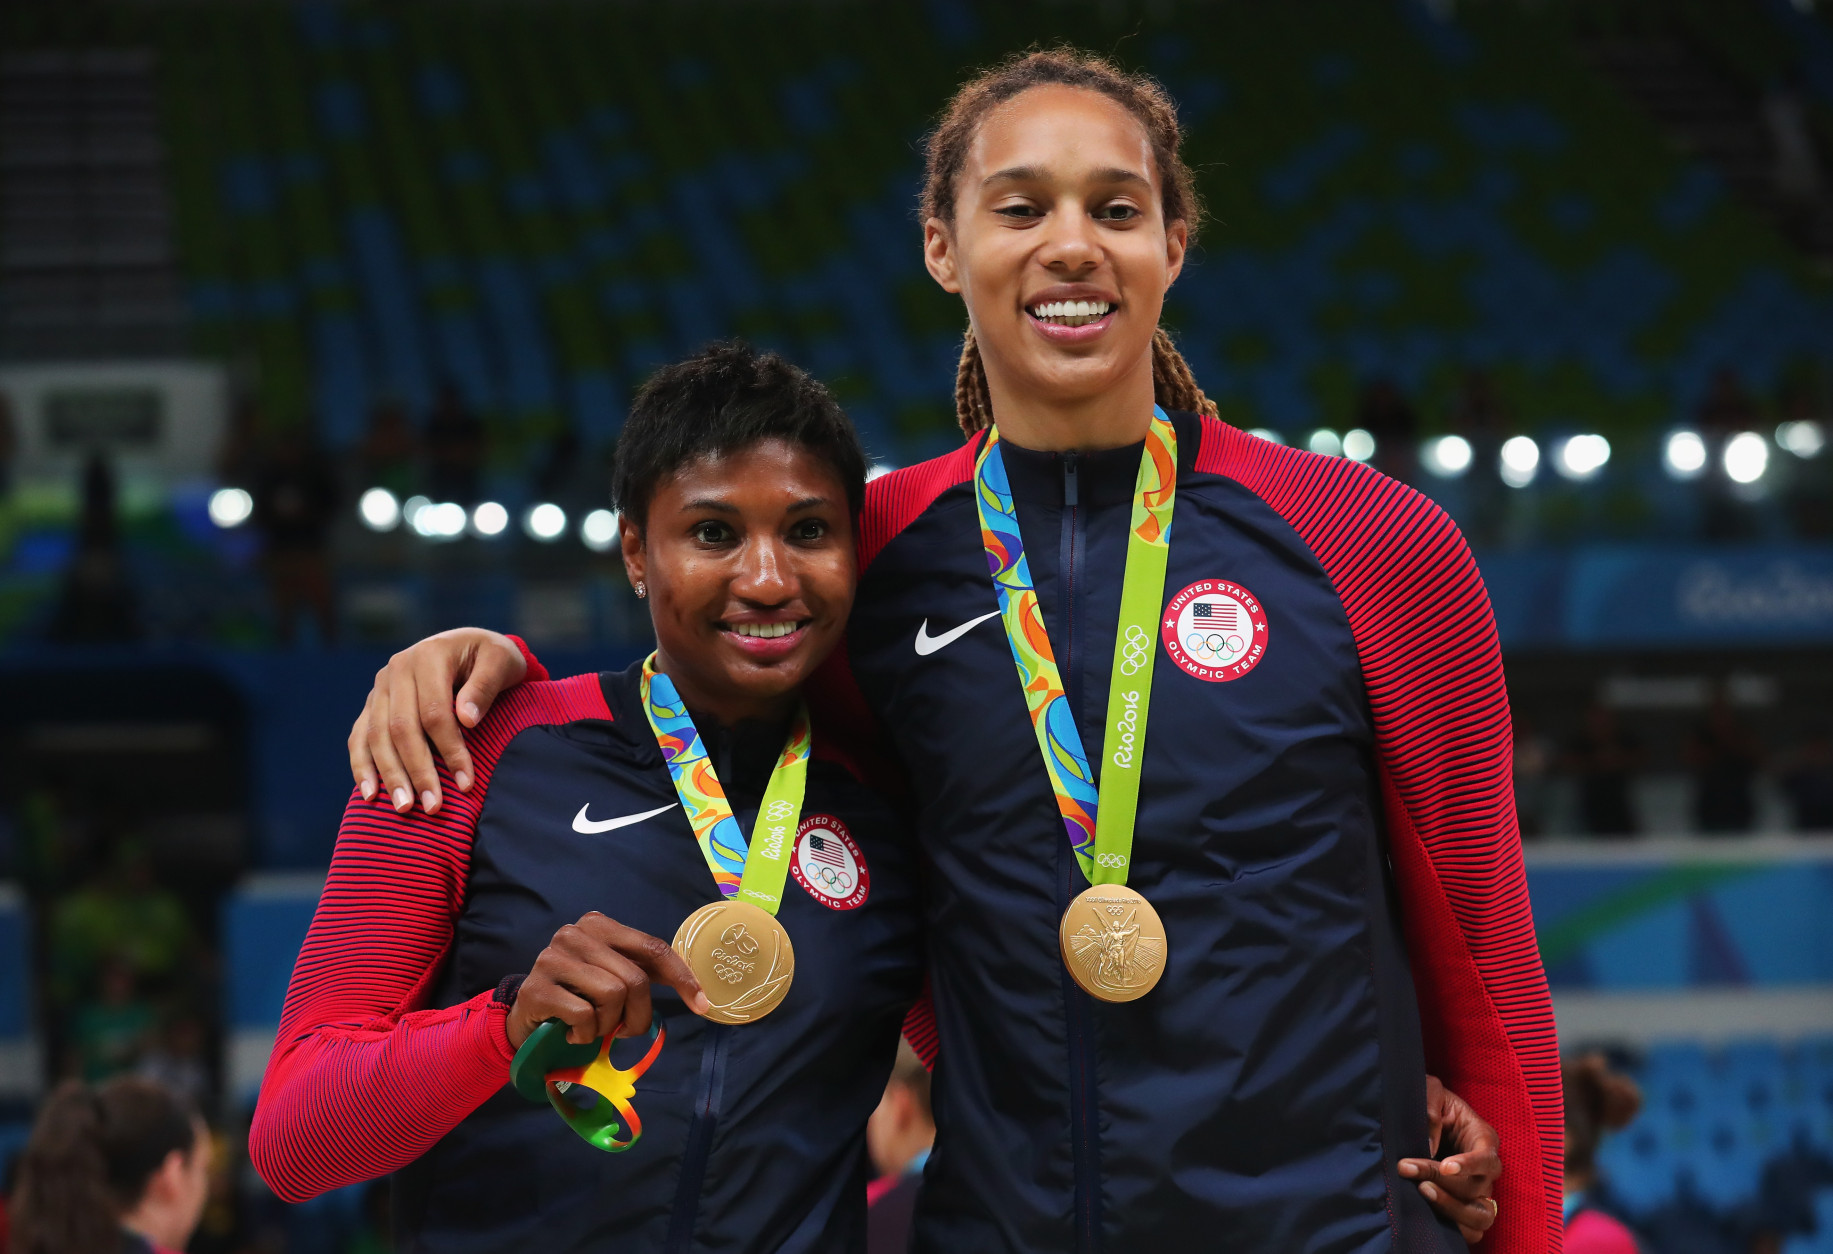 RIO DE JANEIRO, BRAZIL - AUGUST 20:  (L-R) Gold medalists Angel Mccoughtry #8 and Brittney Griner #15 of United States celebrate during the medal ceremony after the Women's Basketball competition on Day 15 of the Rio 2016 Olympic Games at Carioca Arena 1 on August 20, 2016 in Rio de Janeiro, Brazil.  (Photo by Tom Pennington/Getty Images)